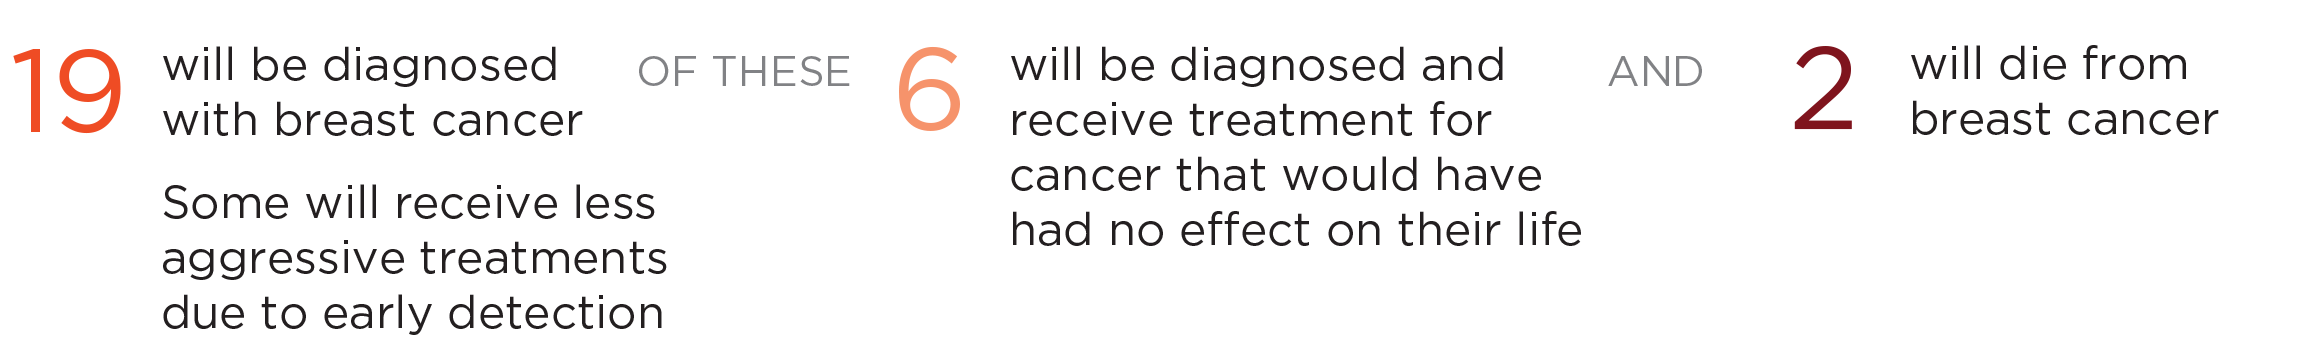 mammography_numbers_3.png